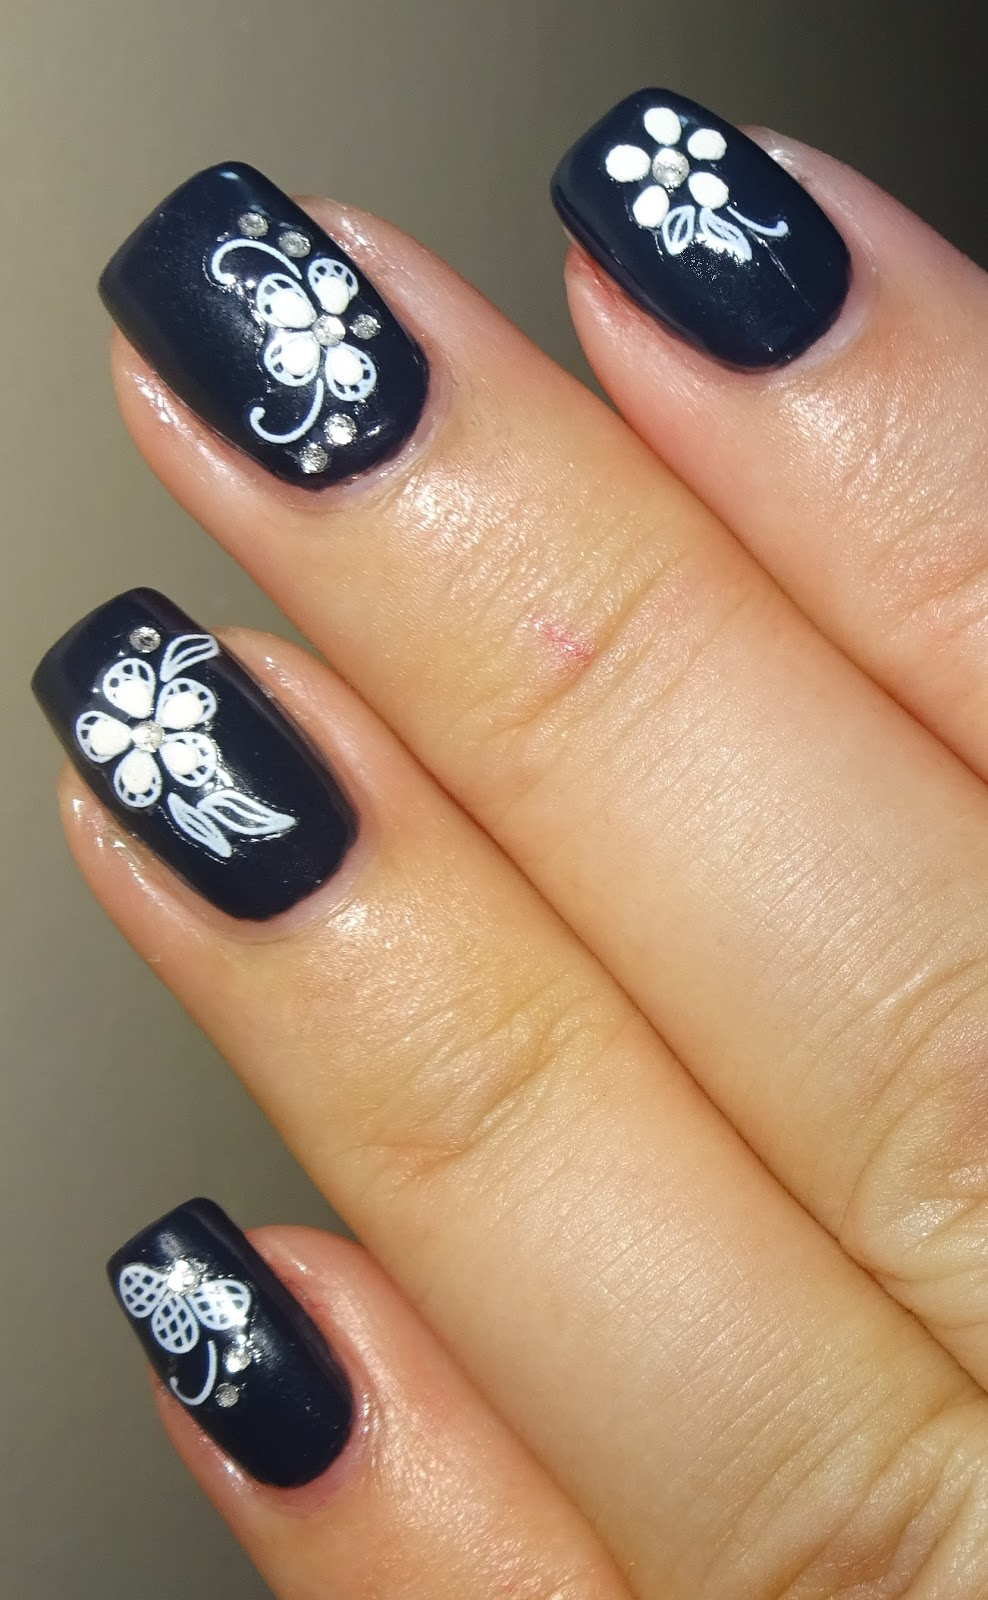 Wendy's Delights: White Flower Nail Stickers From Nail Art UK